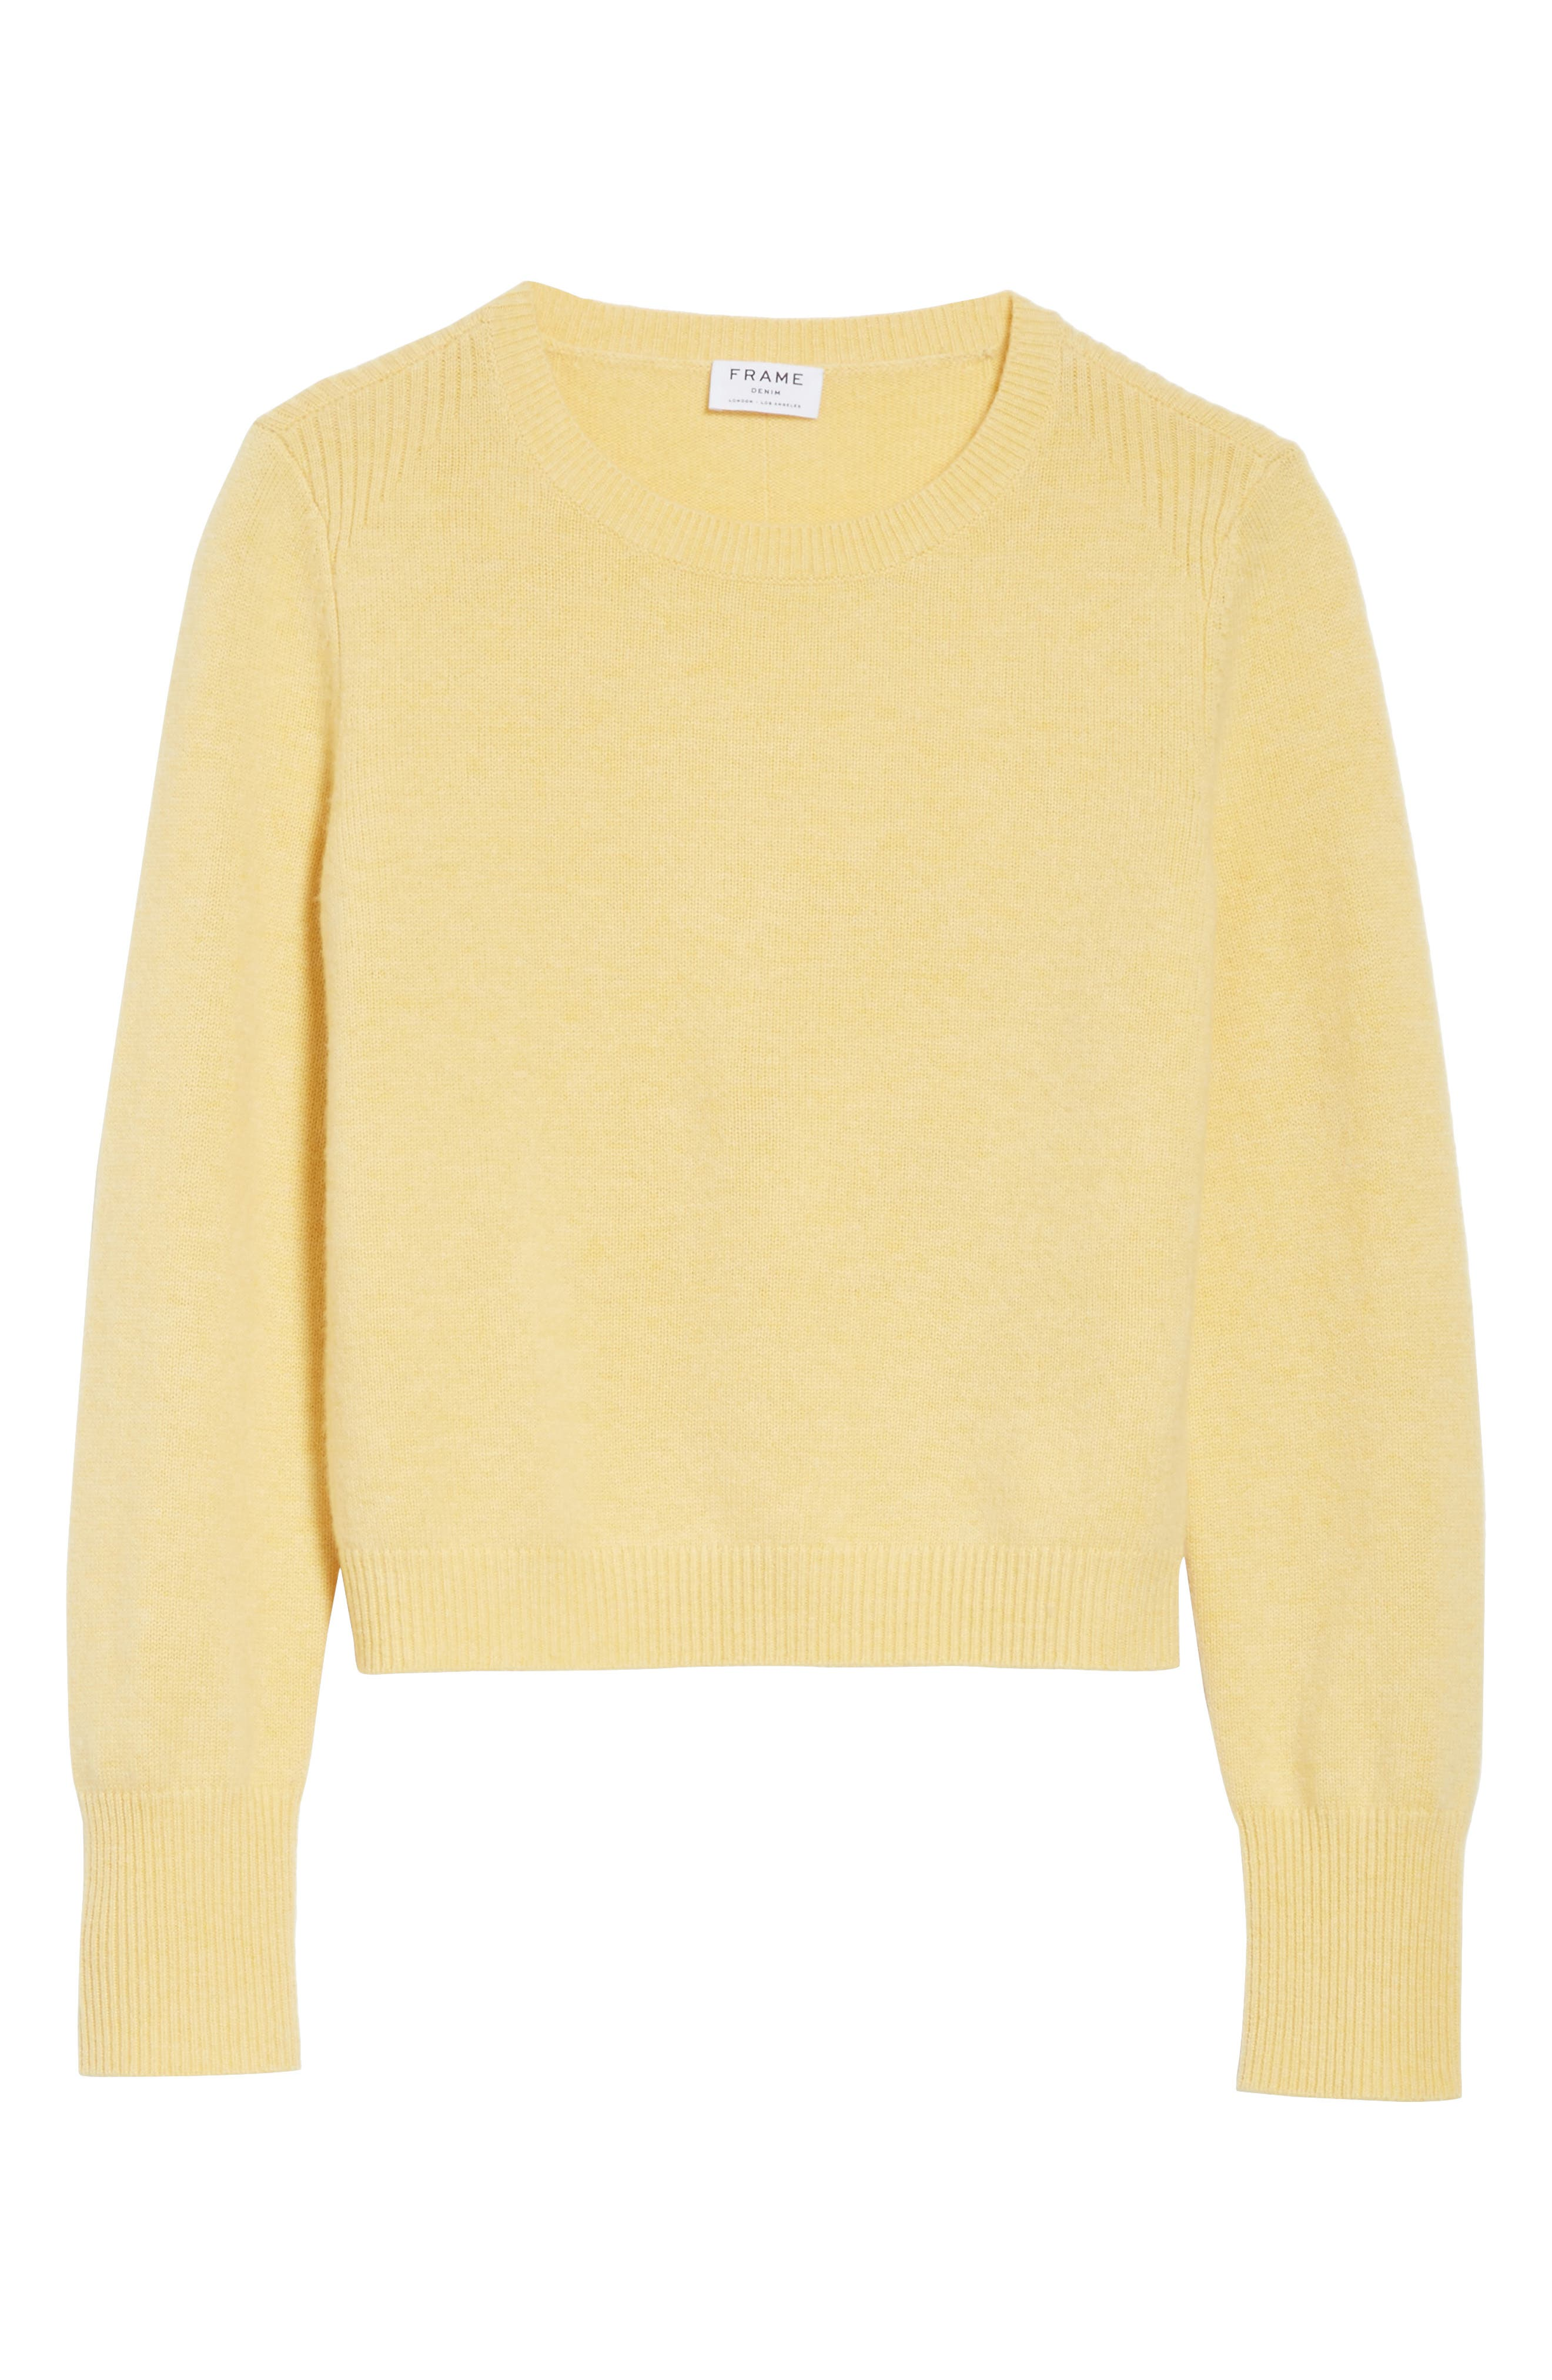 Wool & Cashmere Sweater,                             Alternate thumbnail 6, color,                             700